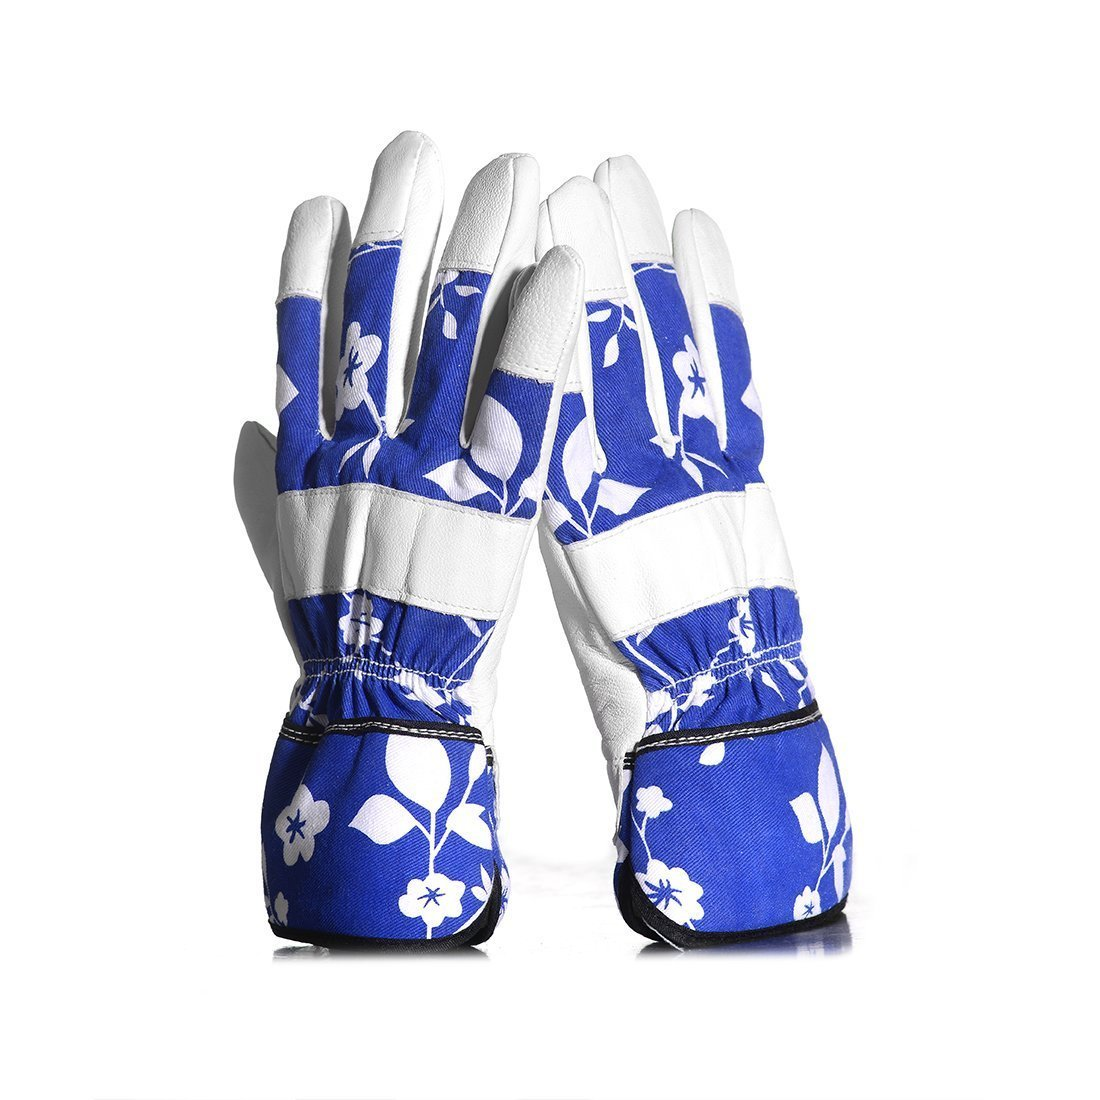 Garden Gloves - Leather Lady Women's Slim Fit Hand Protection - Perfect for Garden and House - Even Safe for Pruning Roses (Blue ) feifuns